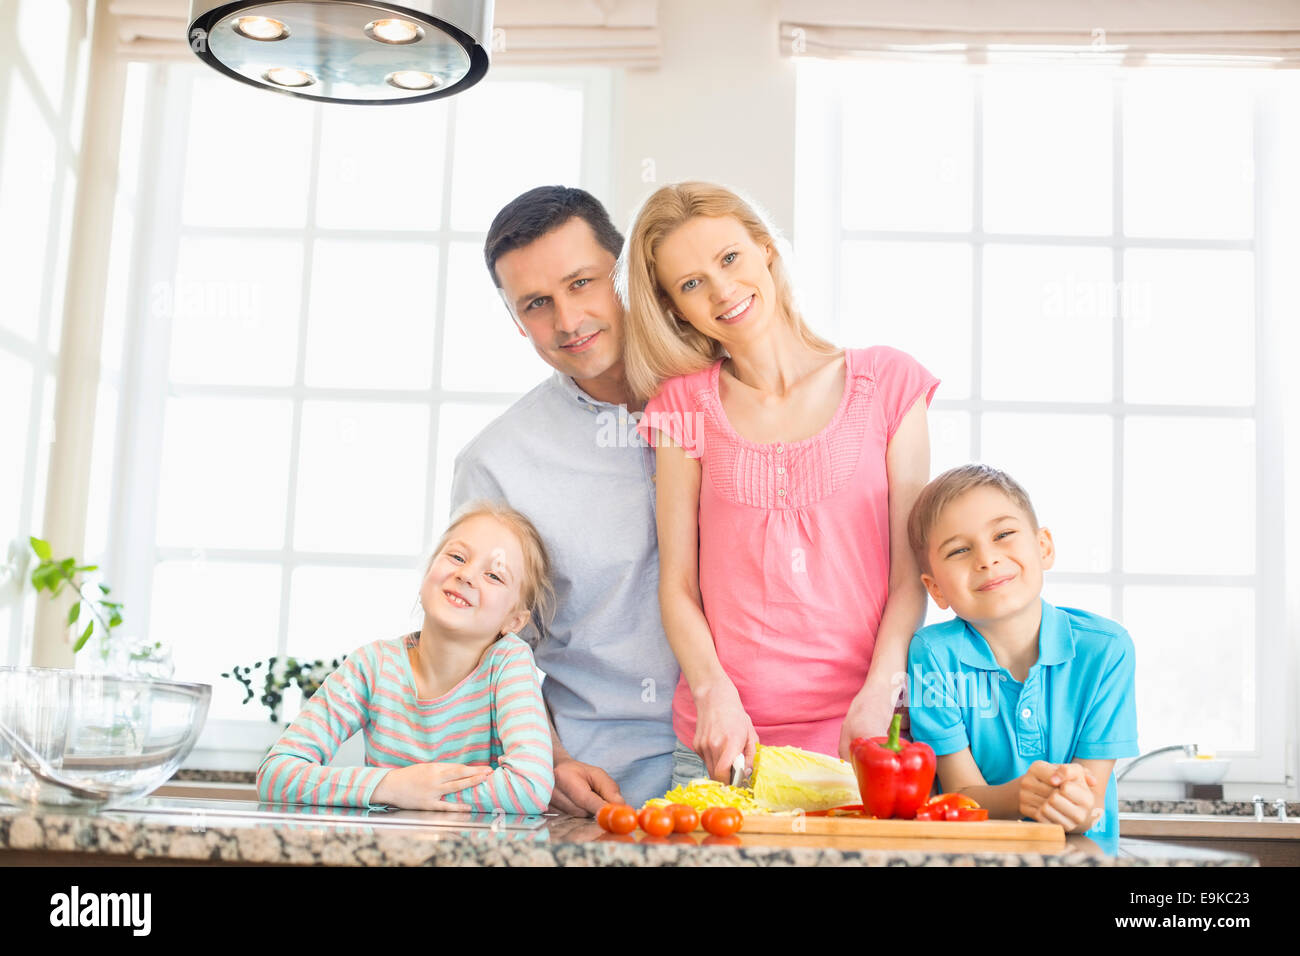 Portrait of happy family preparing food in kitchen - Stock Image